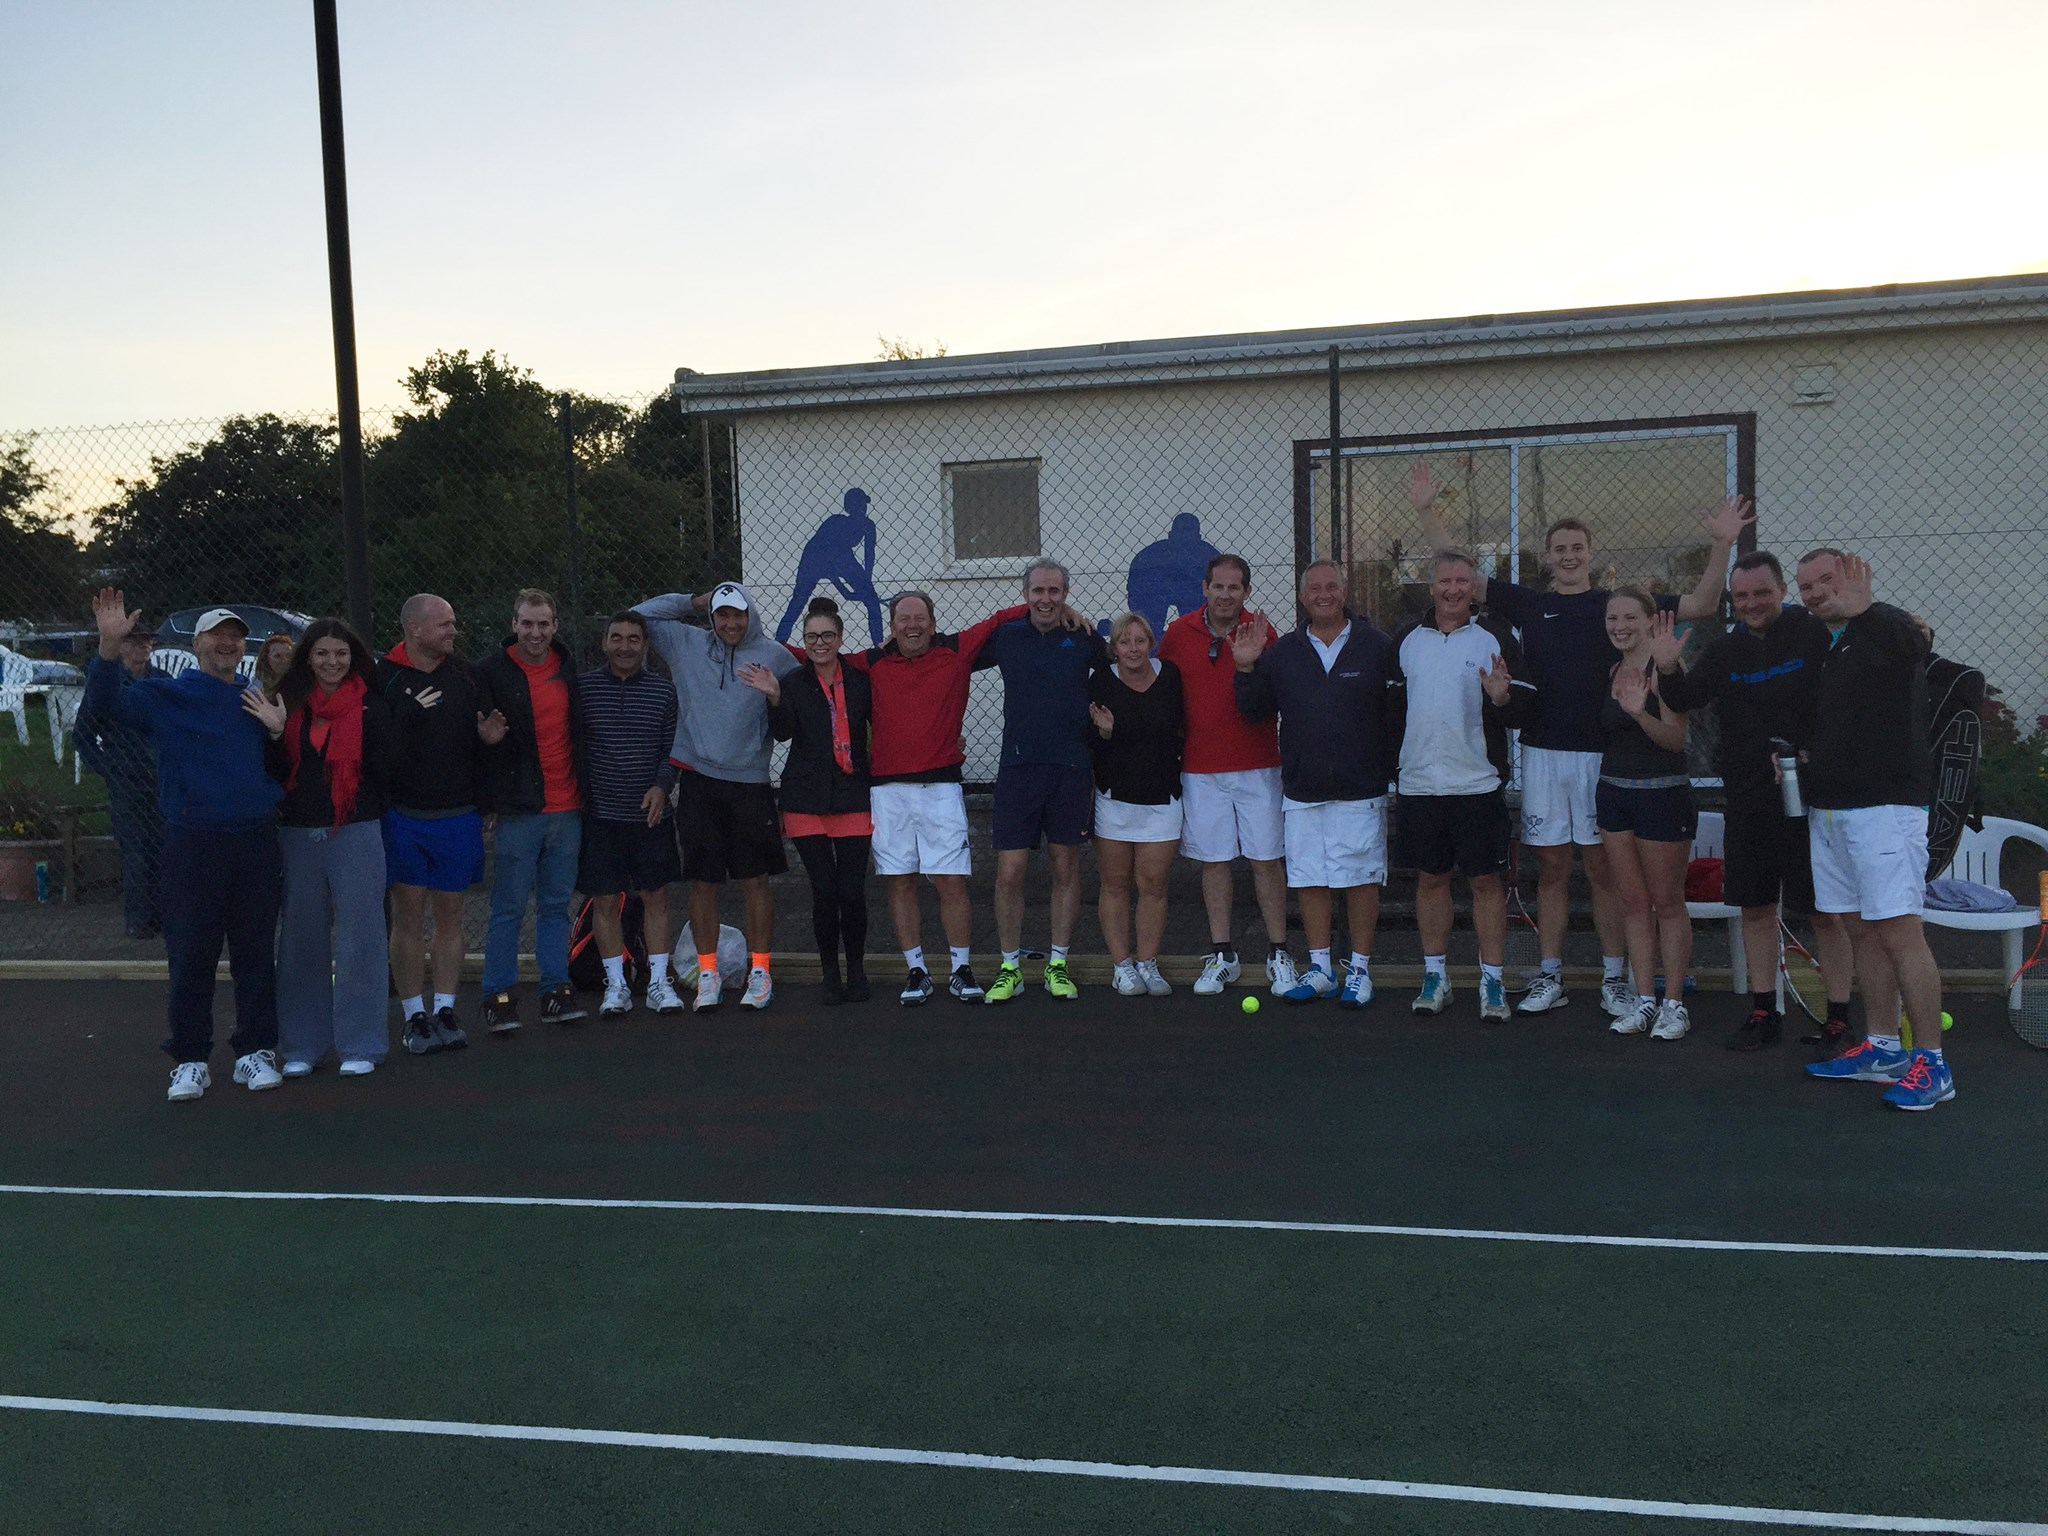 Oundle Tennis Men's (!) Tournament September 2015 in memory of Jim